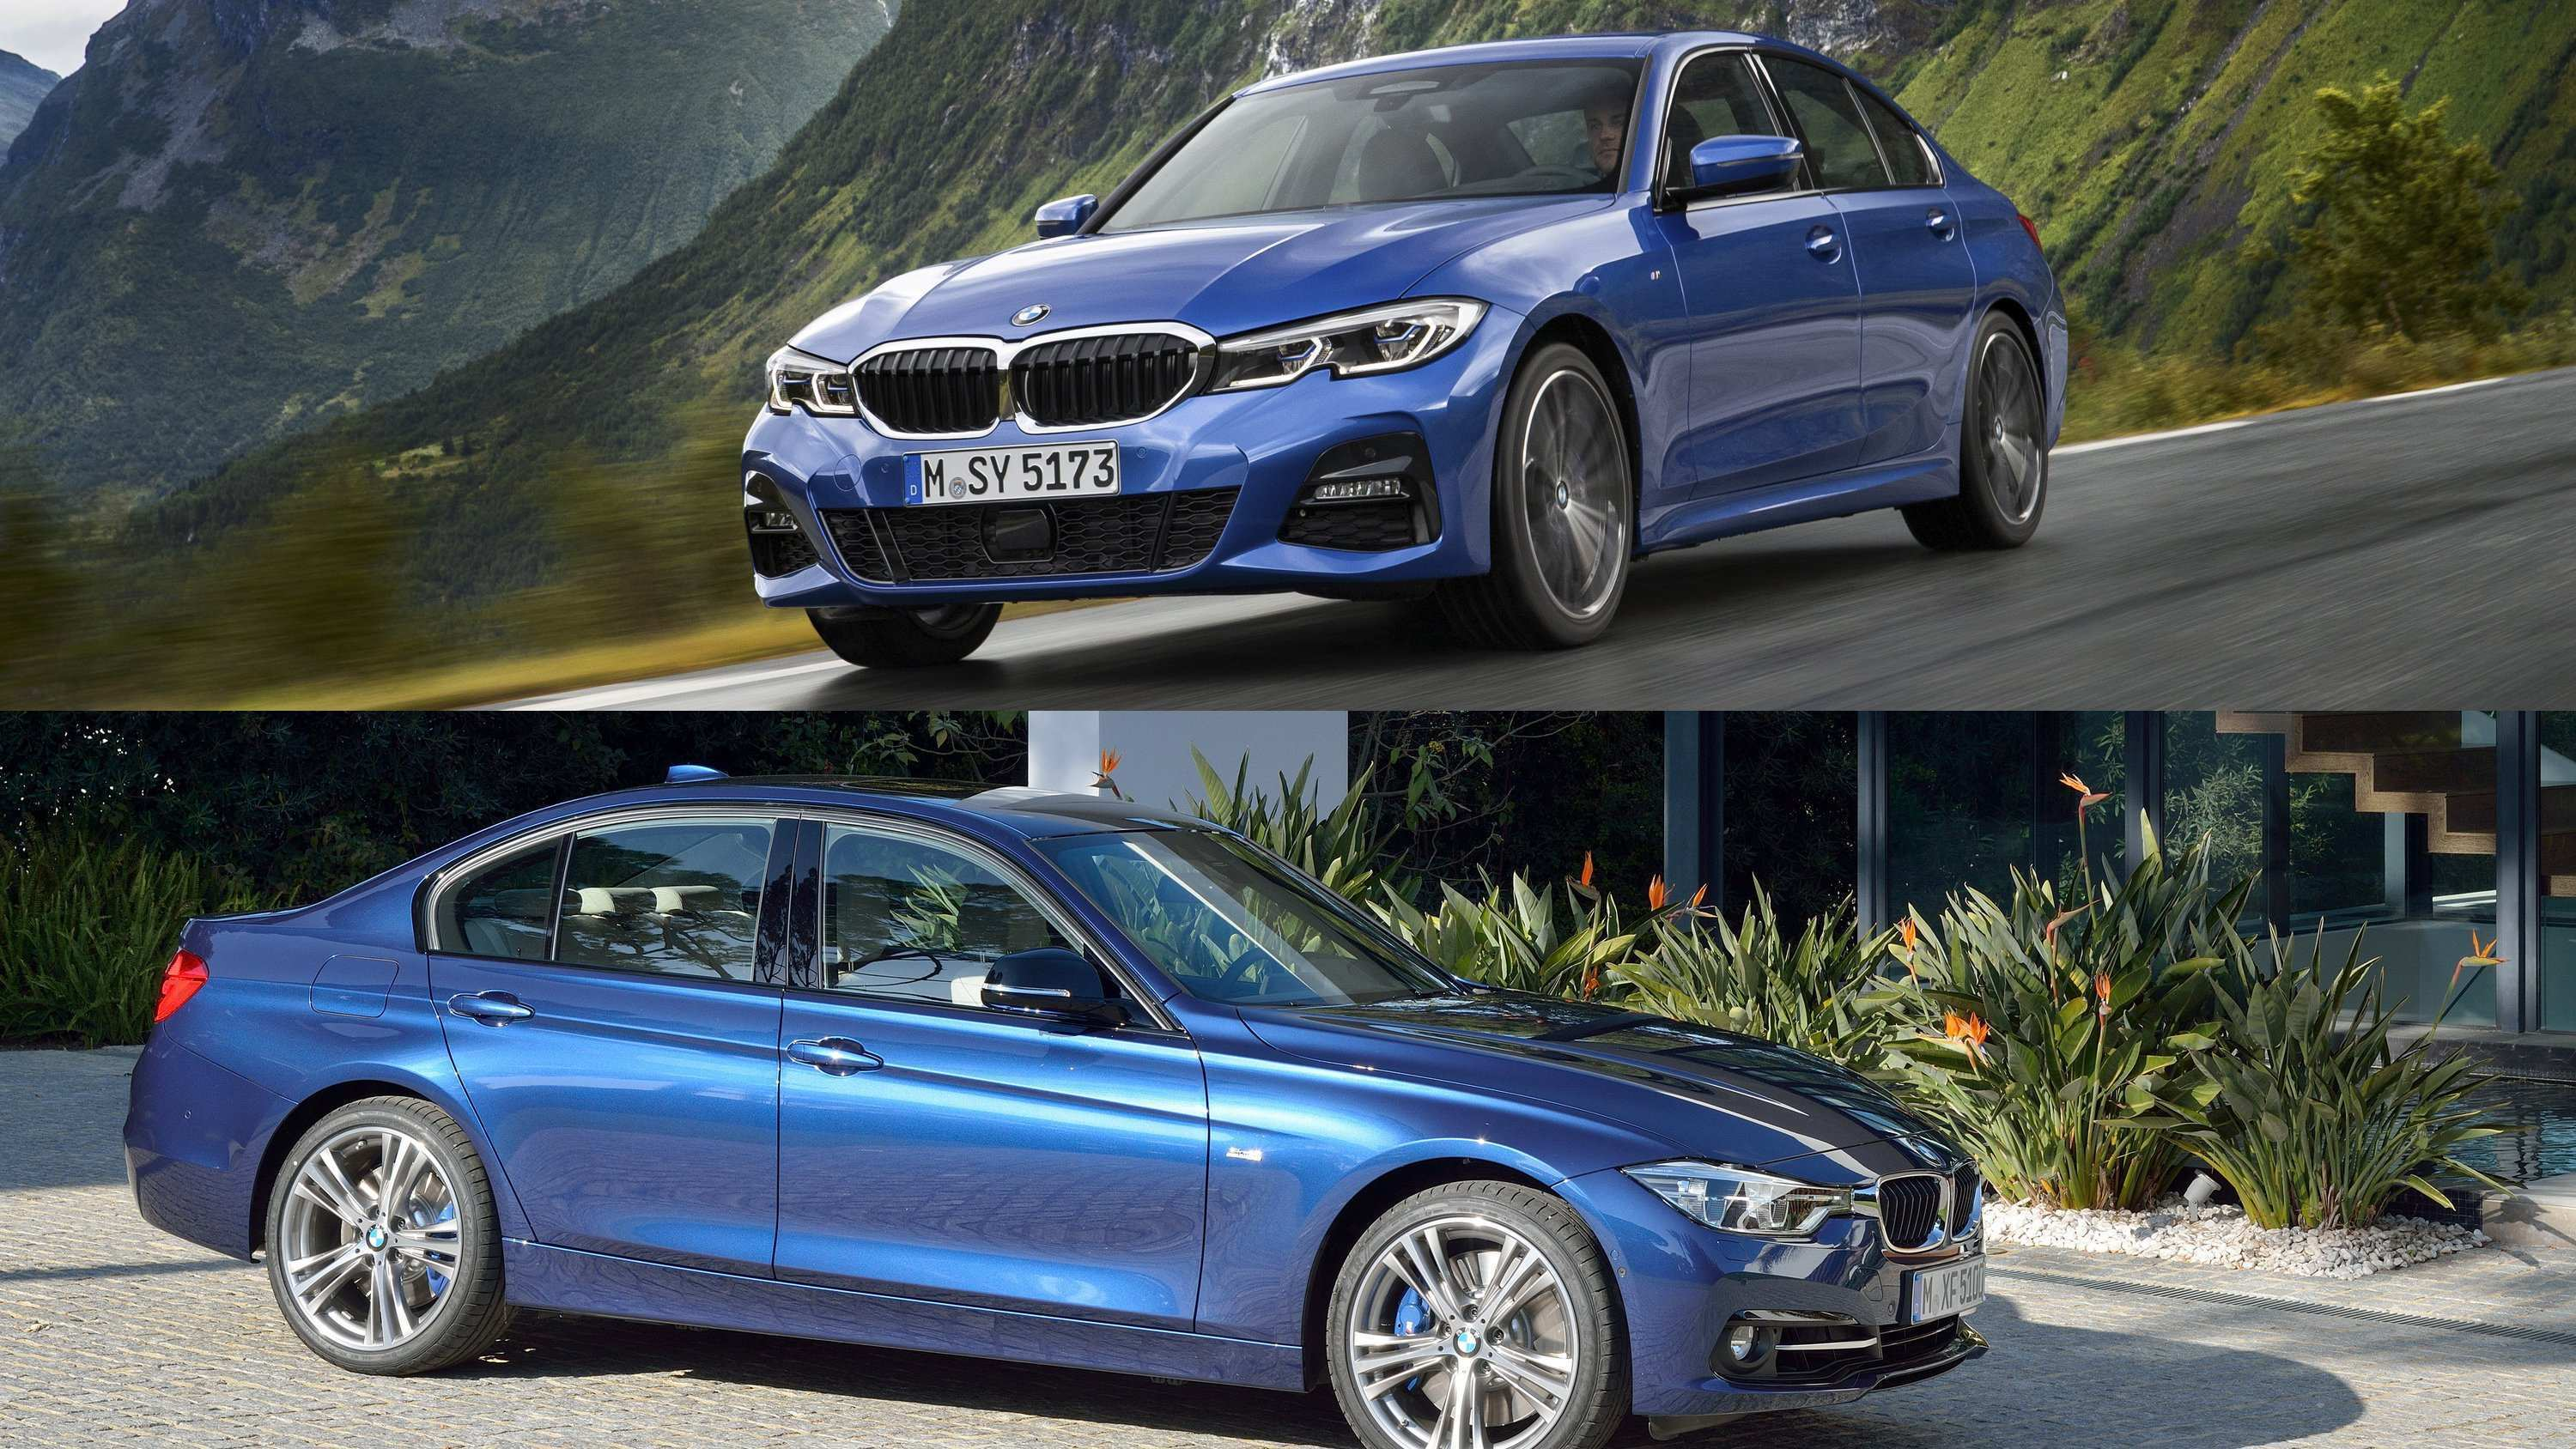 30 New 2020 BMW Tailgate Price with 2020 BMW Tailgate